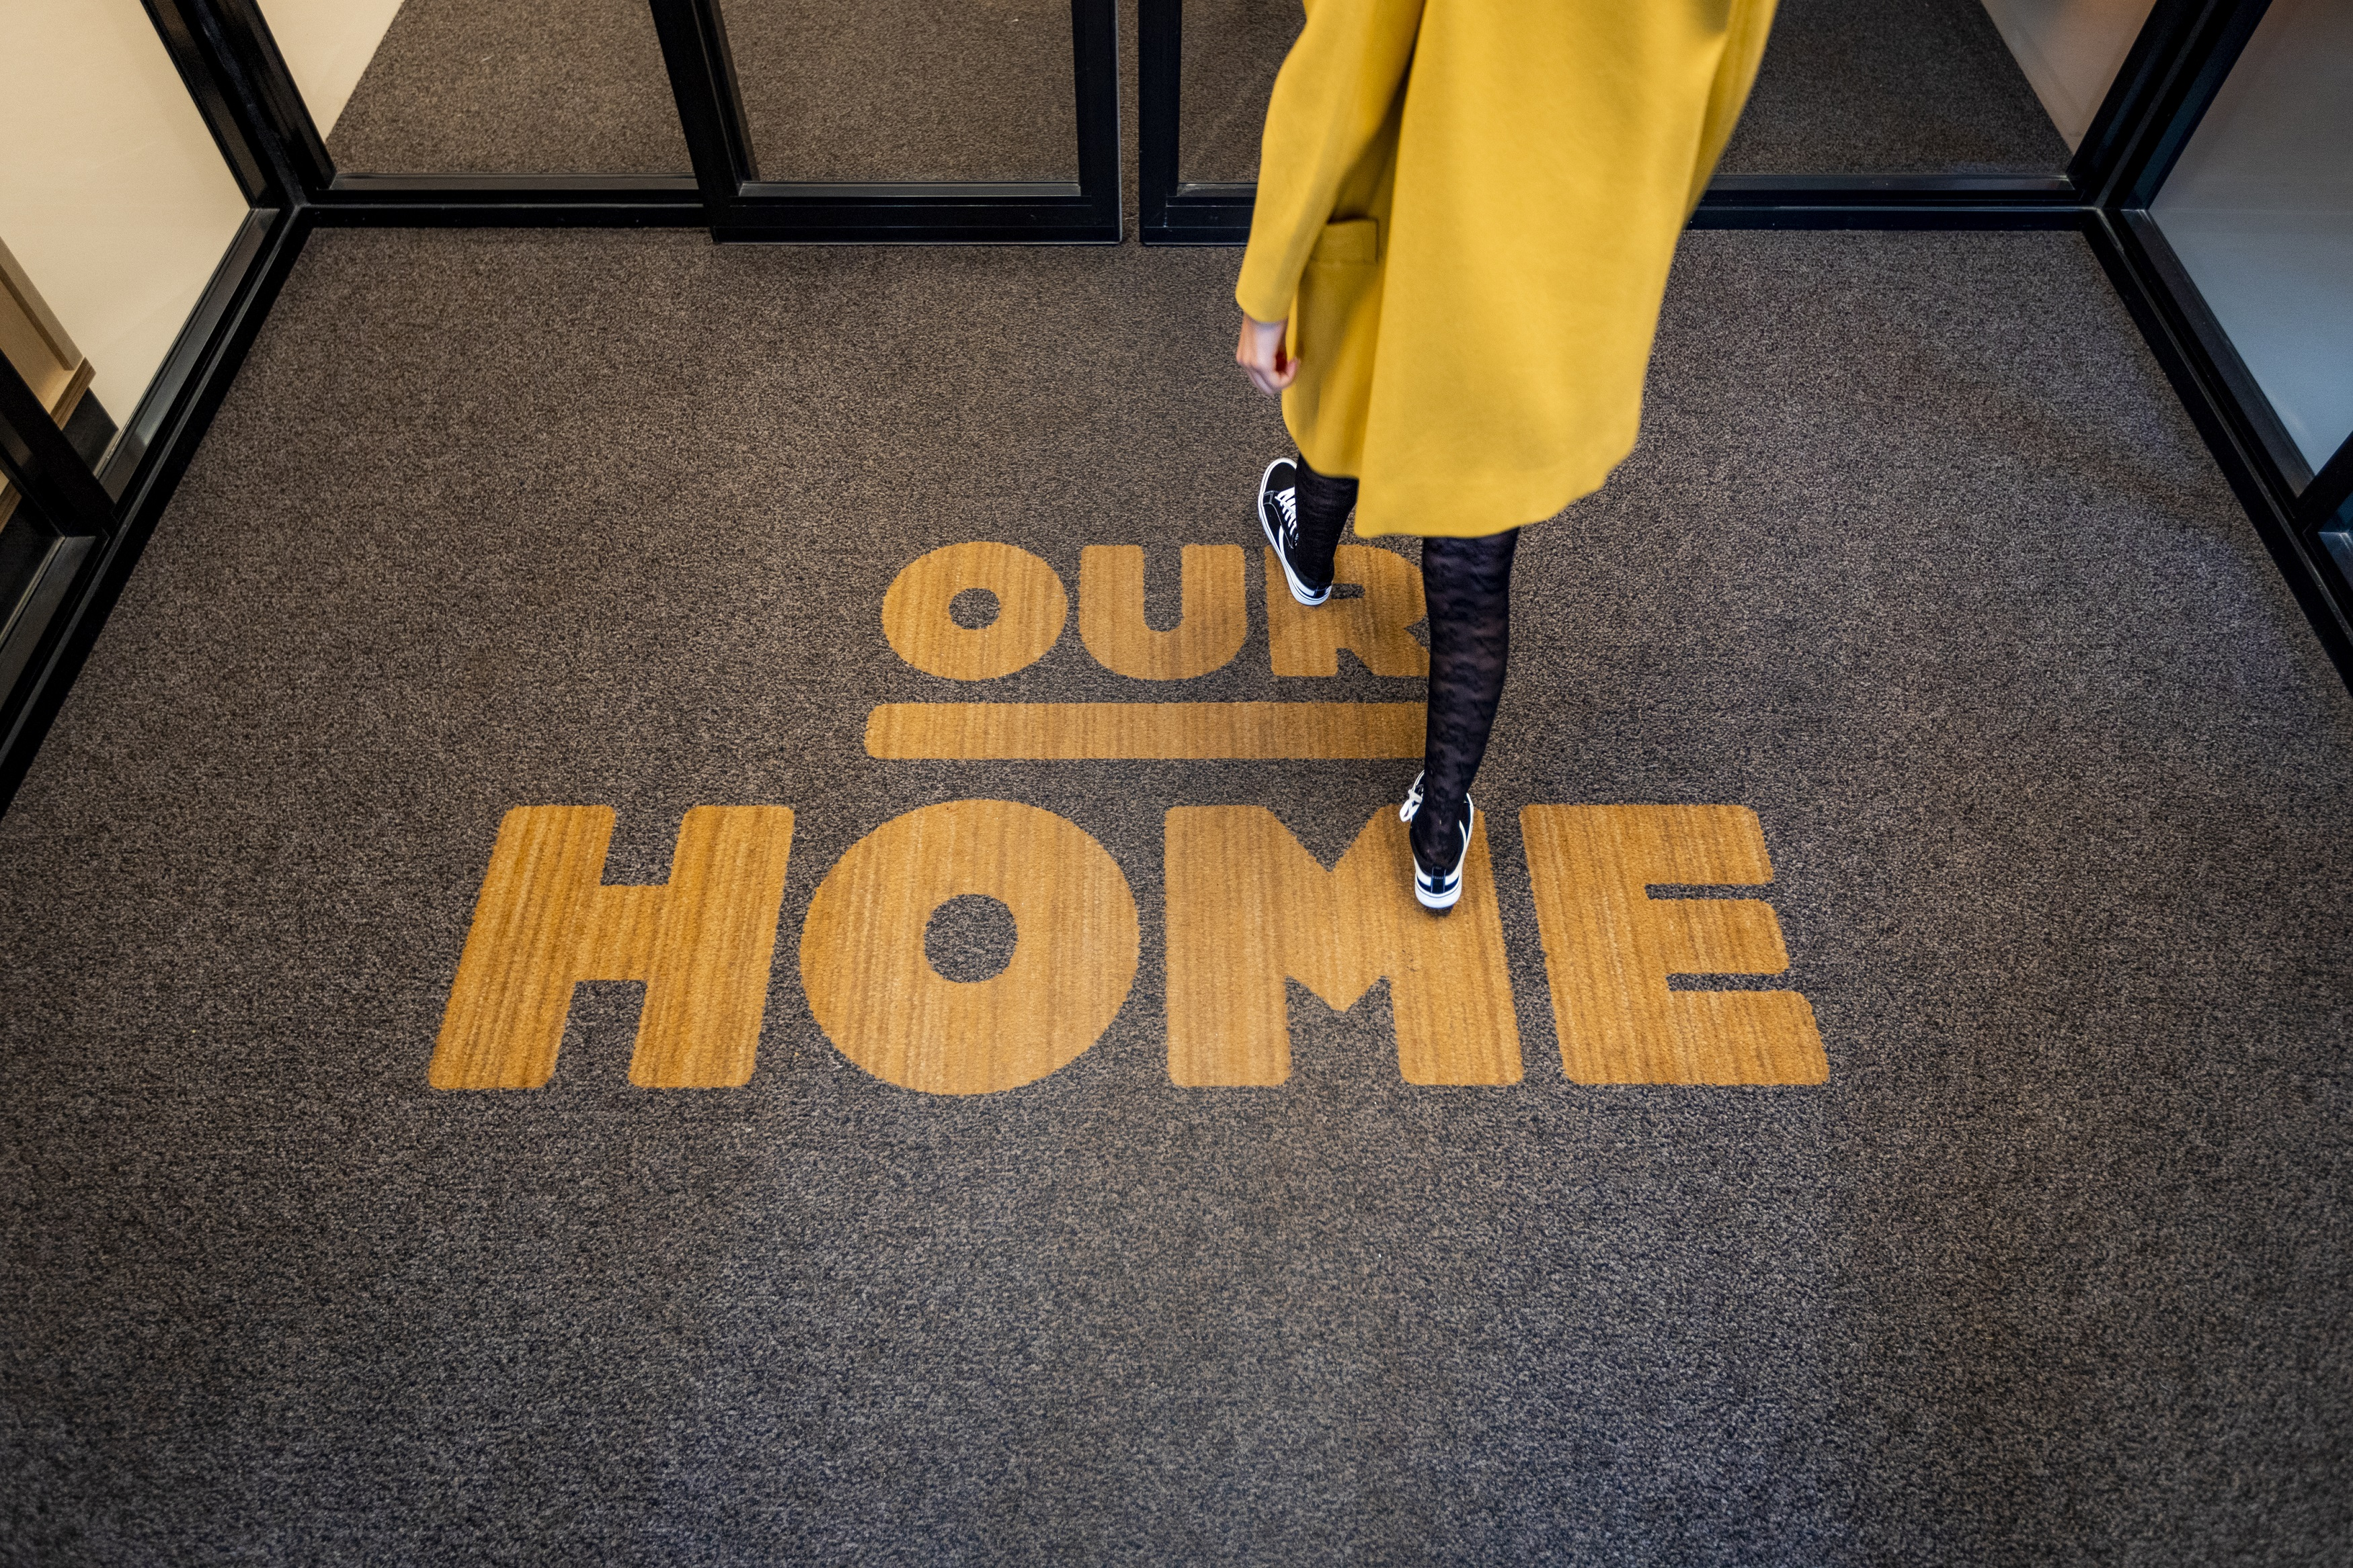 Our Home entrance mat at OurDomain